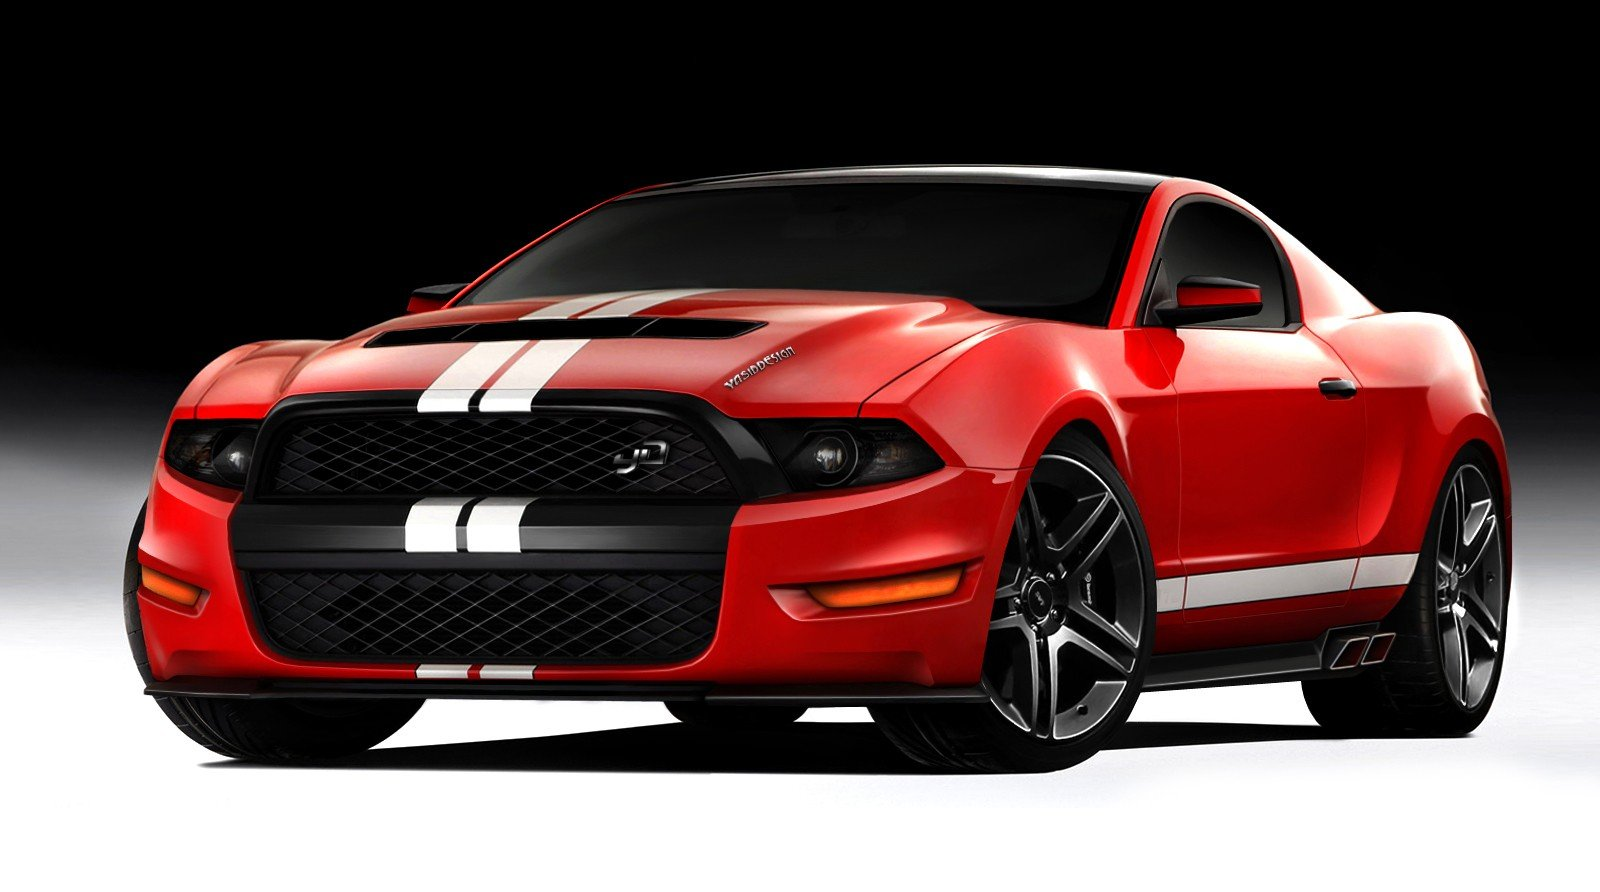 2014 Ford Mustang GT HD Wallpapers 1600x892